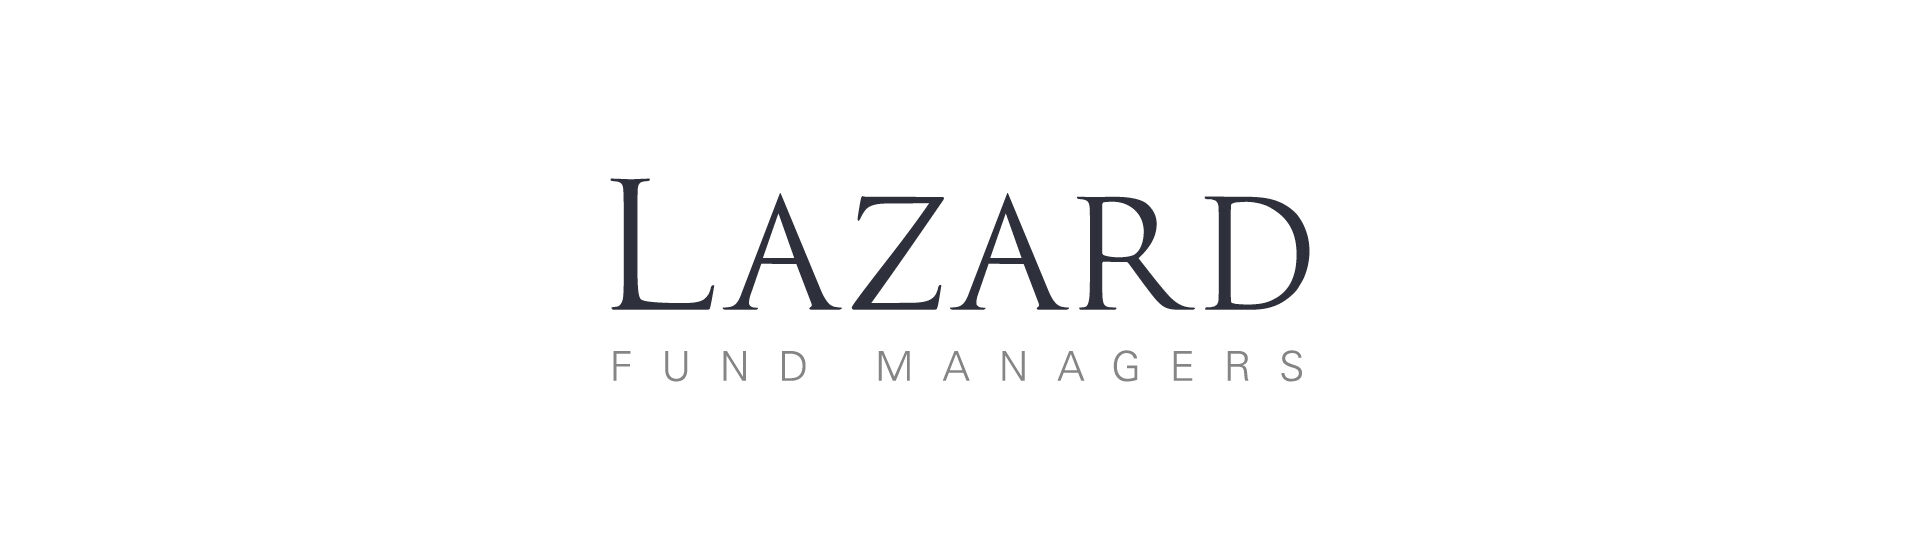 Convertible bonds at LAZARD: Reduce market pitfalls, take part in equity upsides